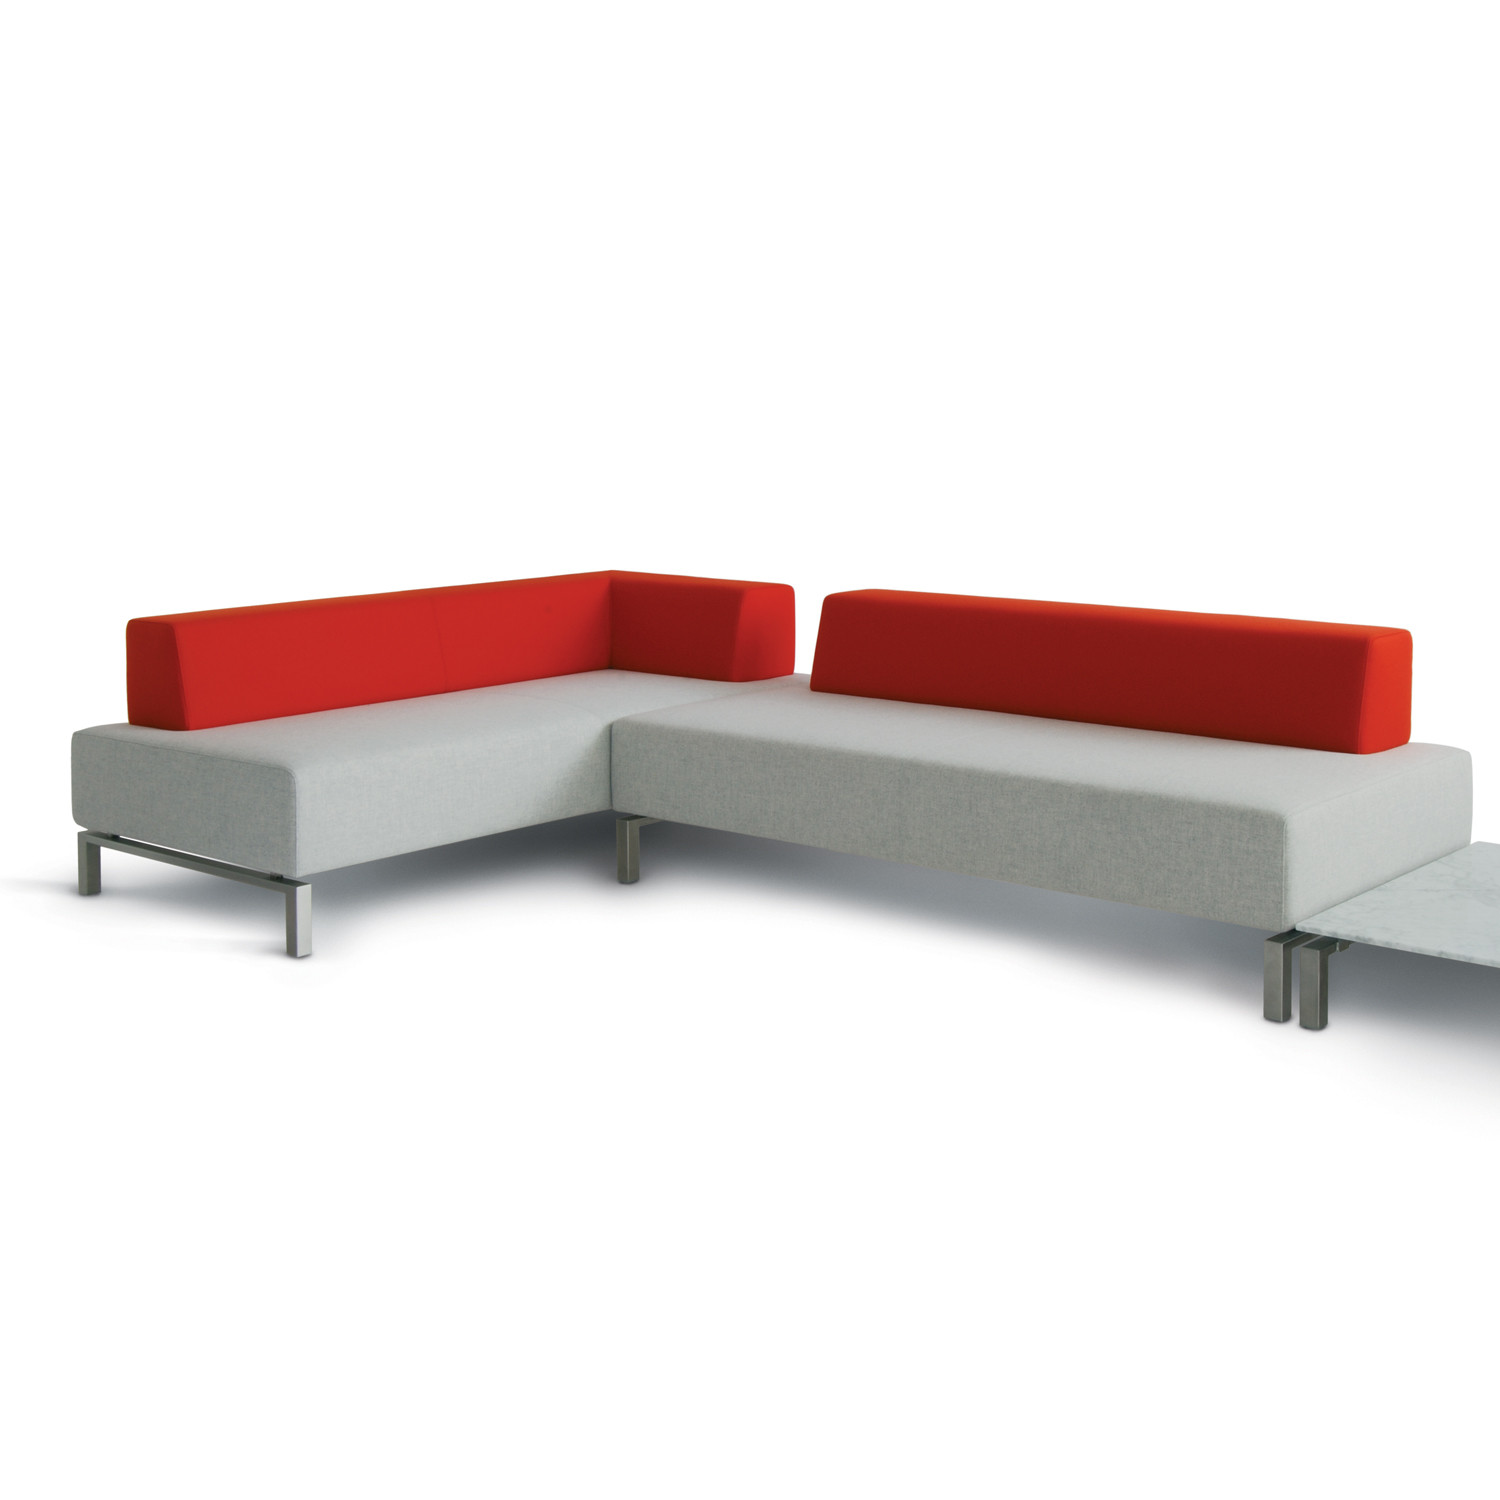 Hm93 Upholstered Reception Seating